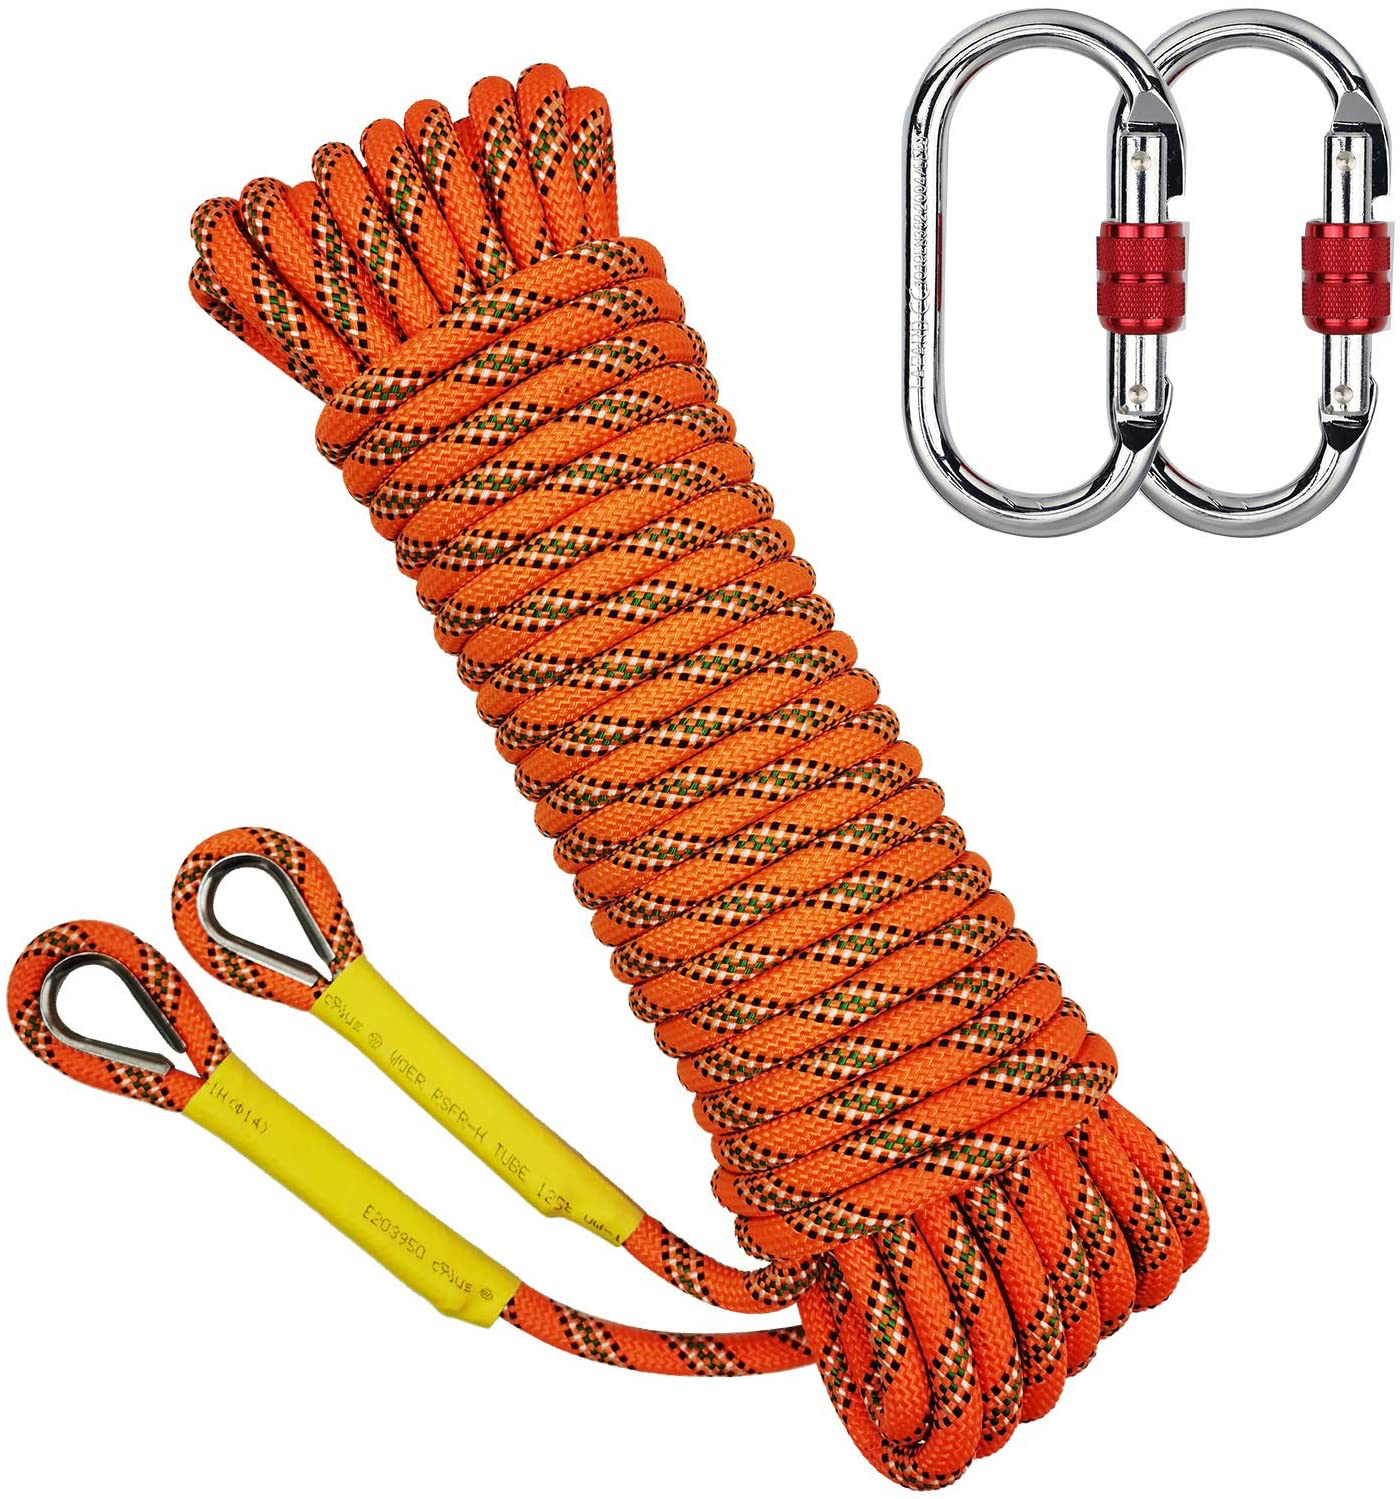 10//20M Tree Rock Climbing Rope Polyester Cord 2 Carabiners Outdoor Emergency Use